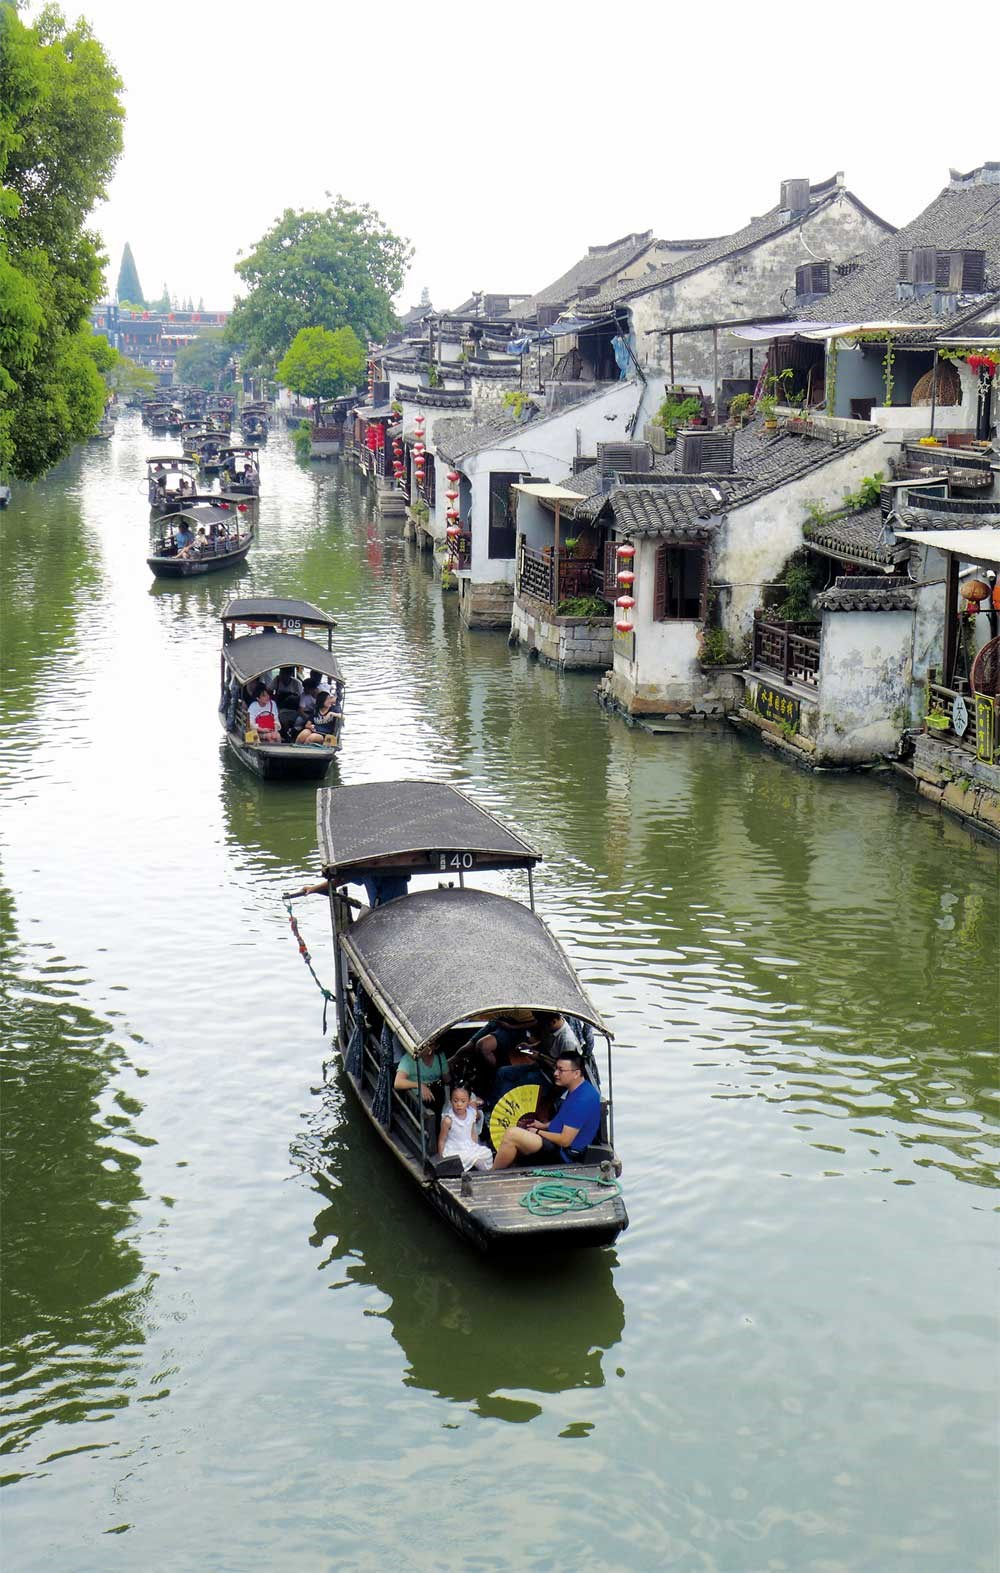 The water town of Xitang boasts more expansive waterways and architecture. — Wang Rongjiang